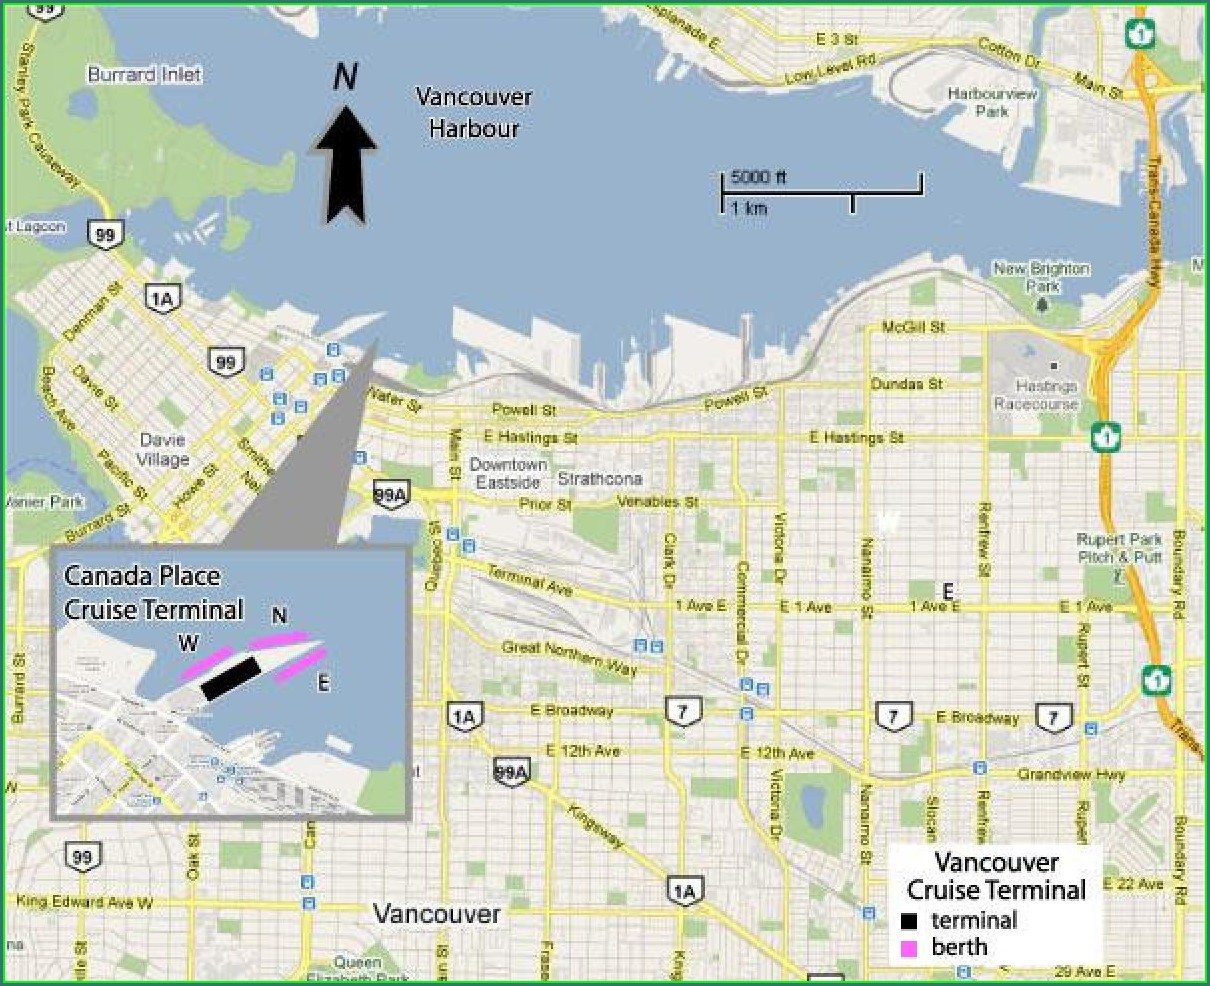 Vancouver Cruise Ship Terminal Map